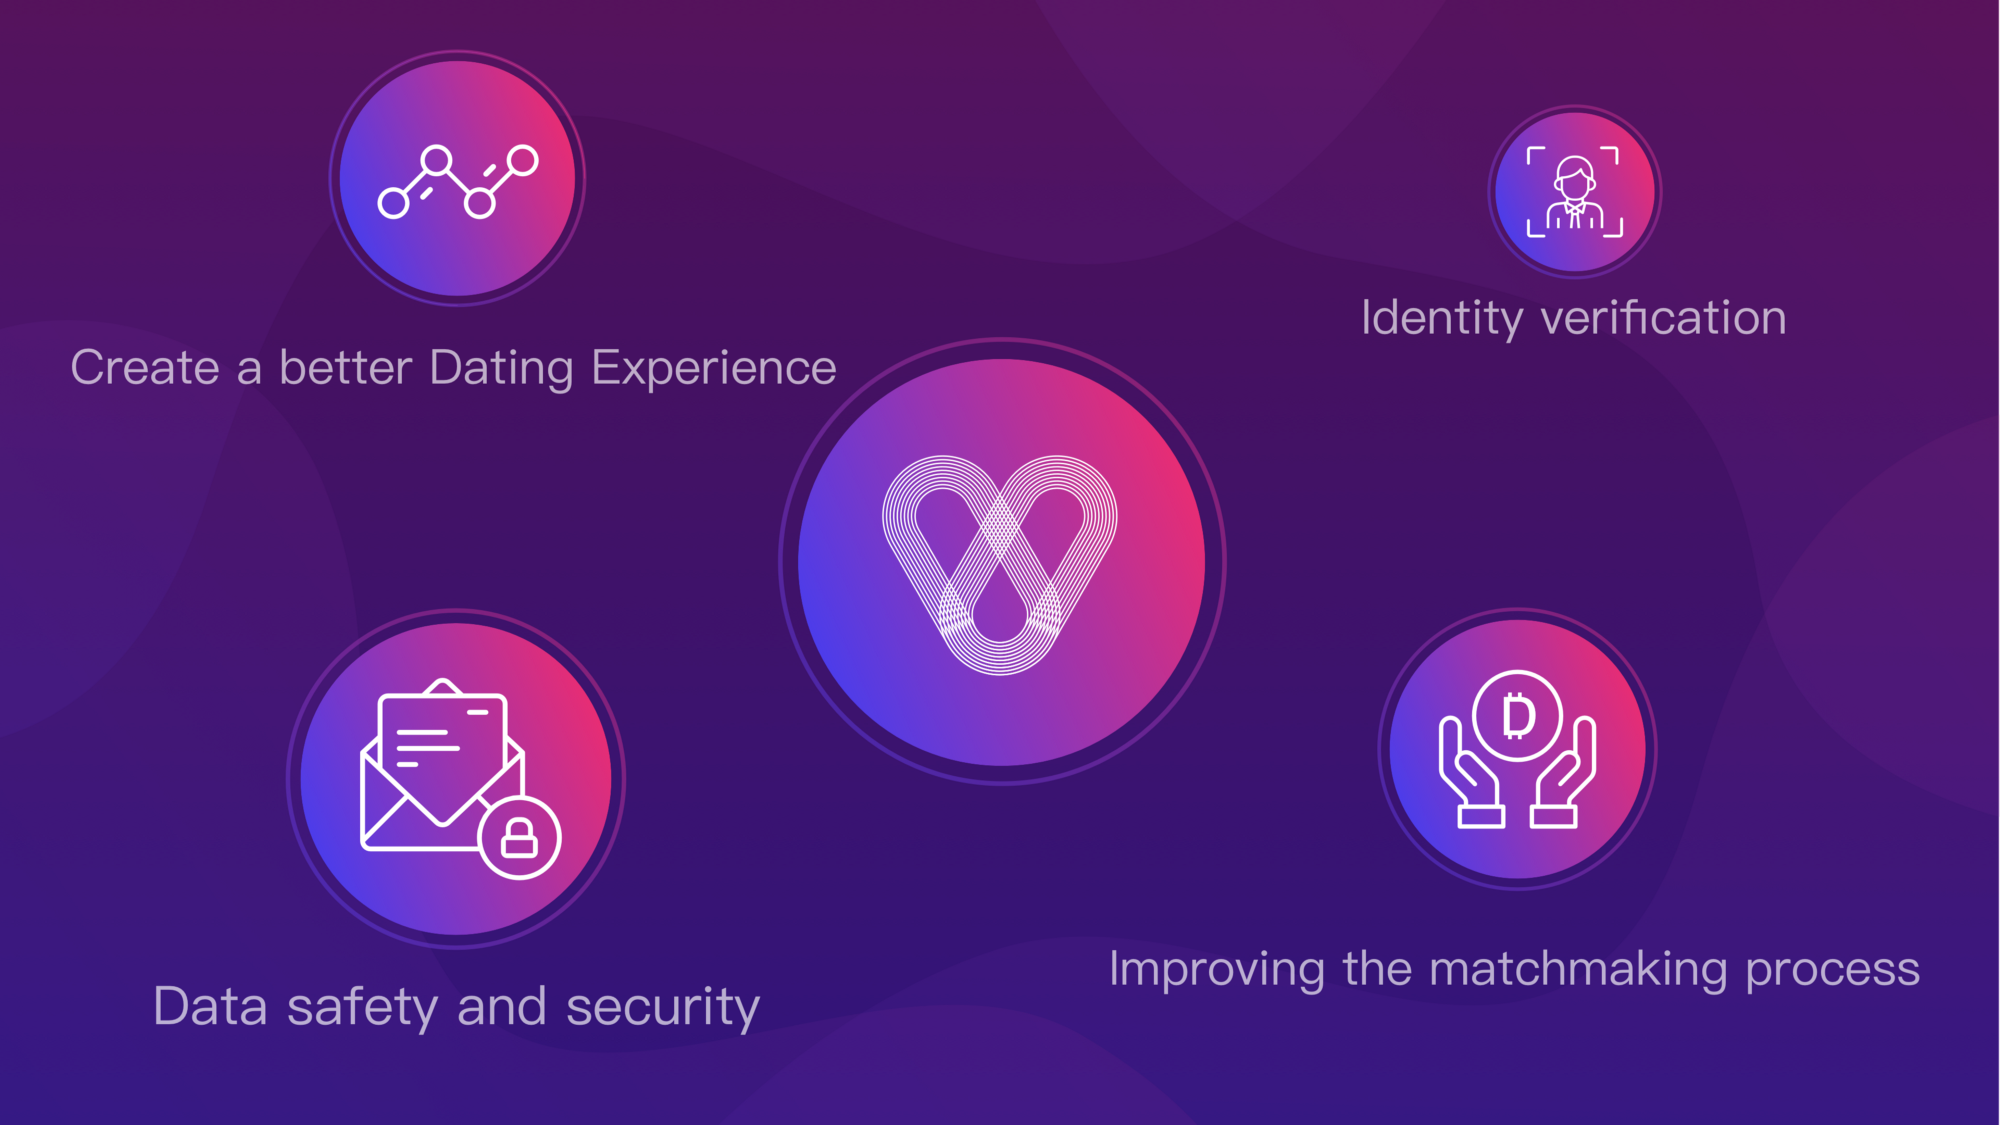 Verified secure dating tinder stories